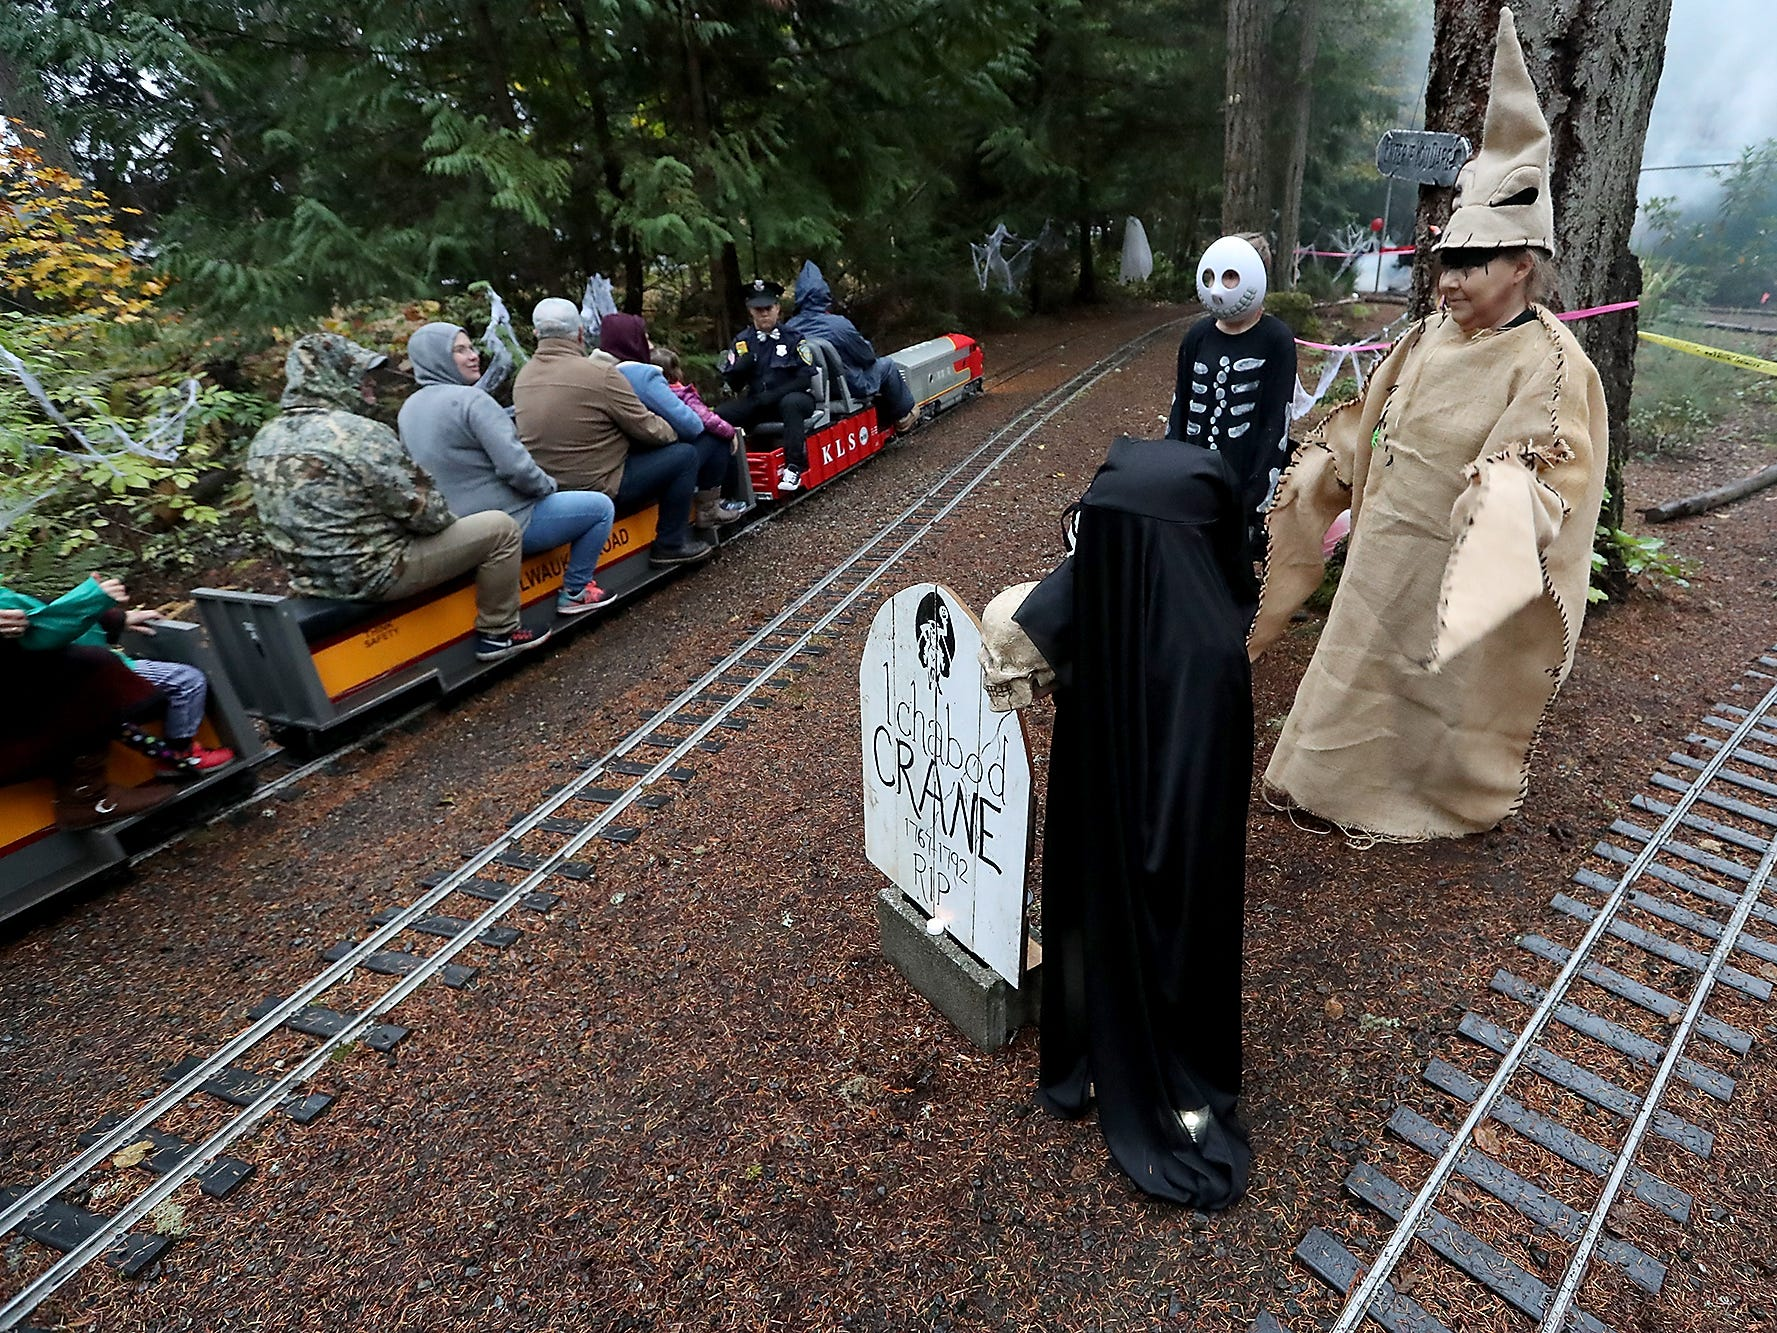 Dressed as characters from A Nightmare Before Christmas, members of the Burkhalter family (clockwise from front) Ryder, Ella, Katie and Annette stand among the headstones and train tracks as a Kitsap Live Steamers Ghost Train steams past on Saturday, October 27, 2018.